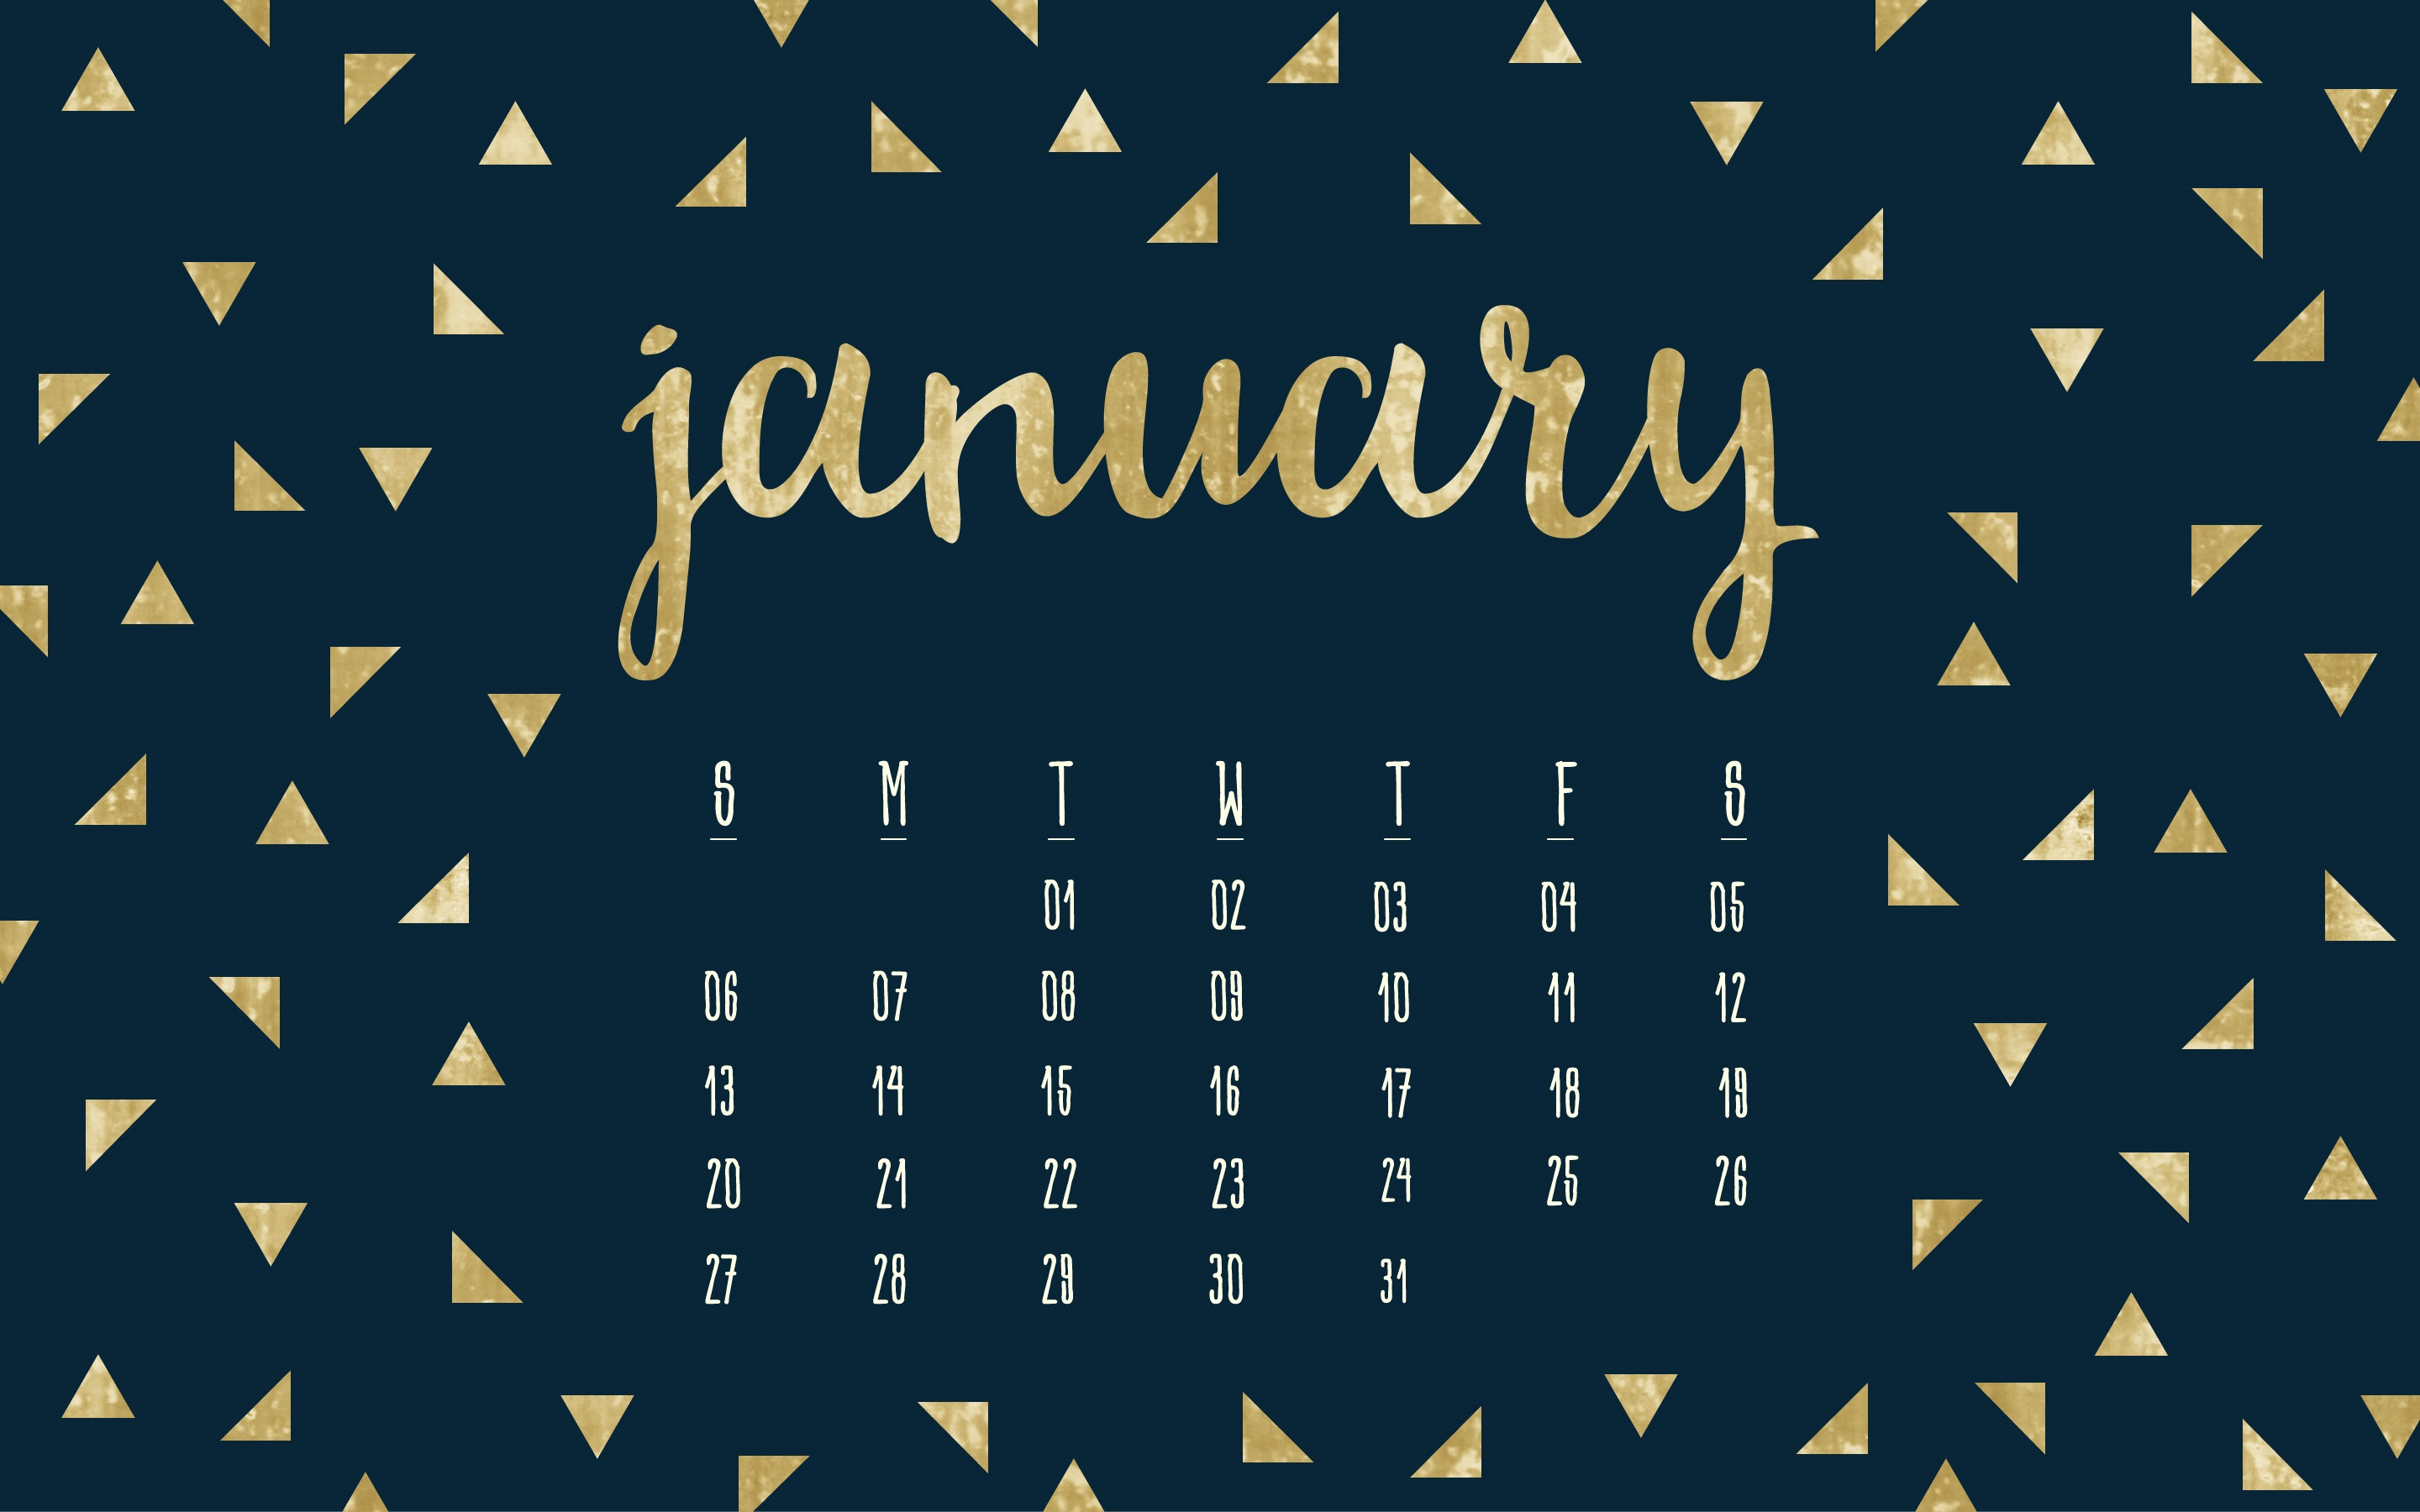 January 2019 HD Calendar Wallpapers Latest Calendar 2880x1800